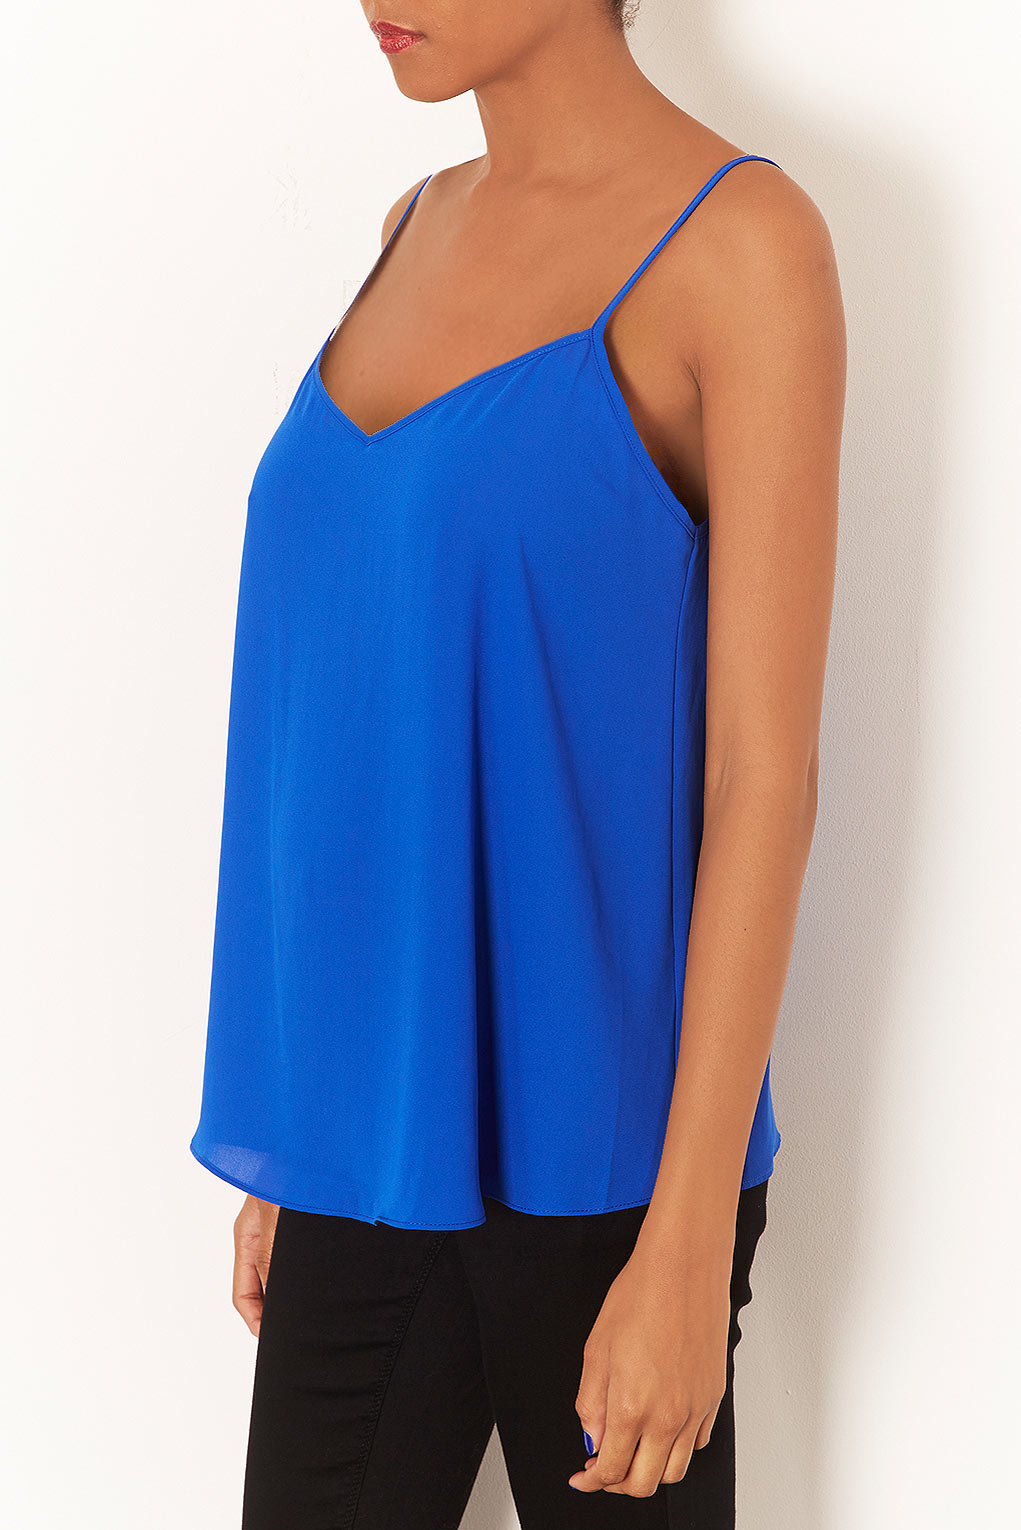 5503528ef223e Lyst - TOPSHOP Maternity Strappy Cami Top in Blue